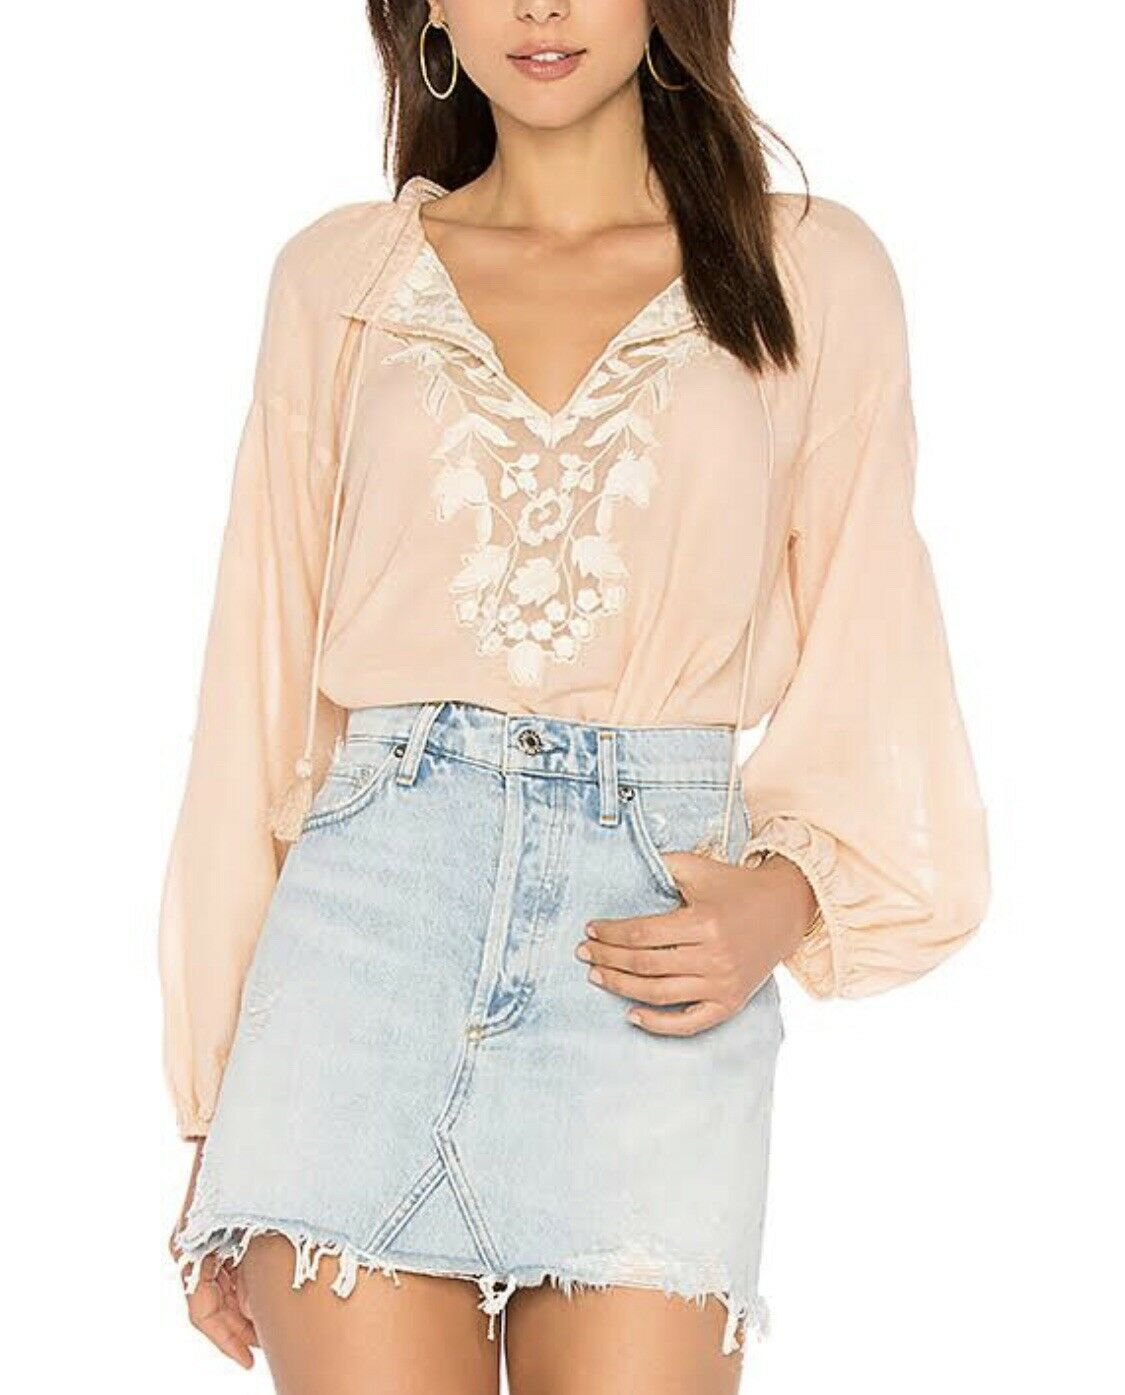 Free People Shimla Cotton Embroidered Peasant Top. color peach, size S